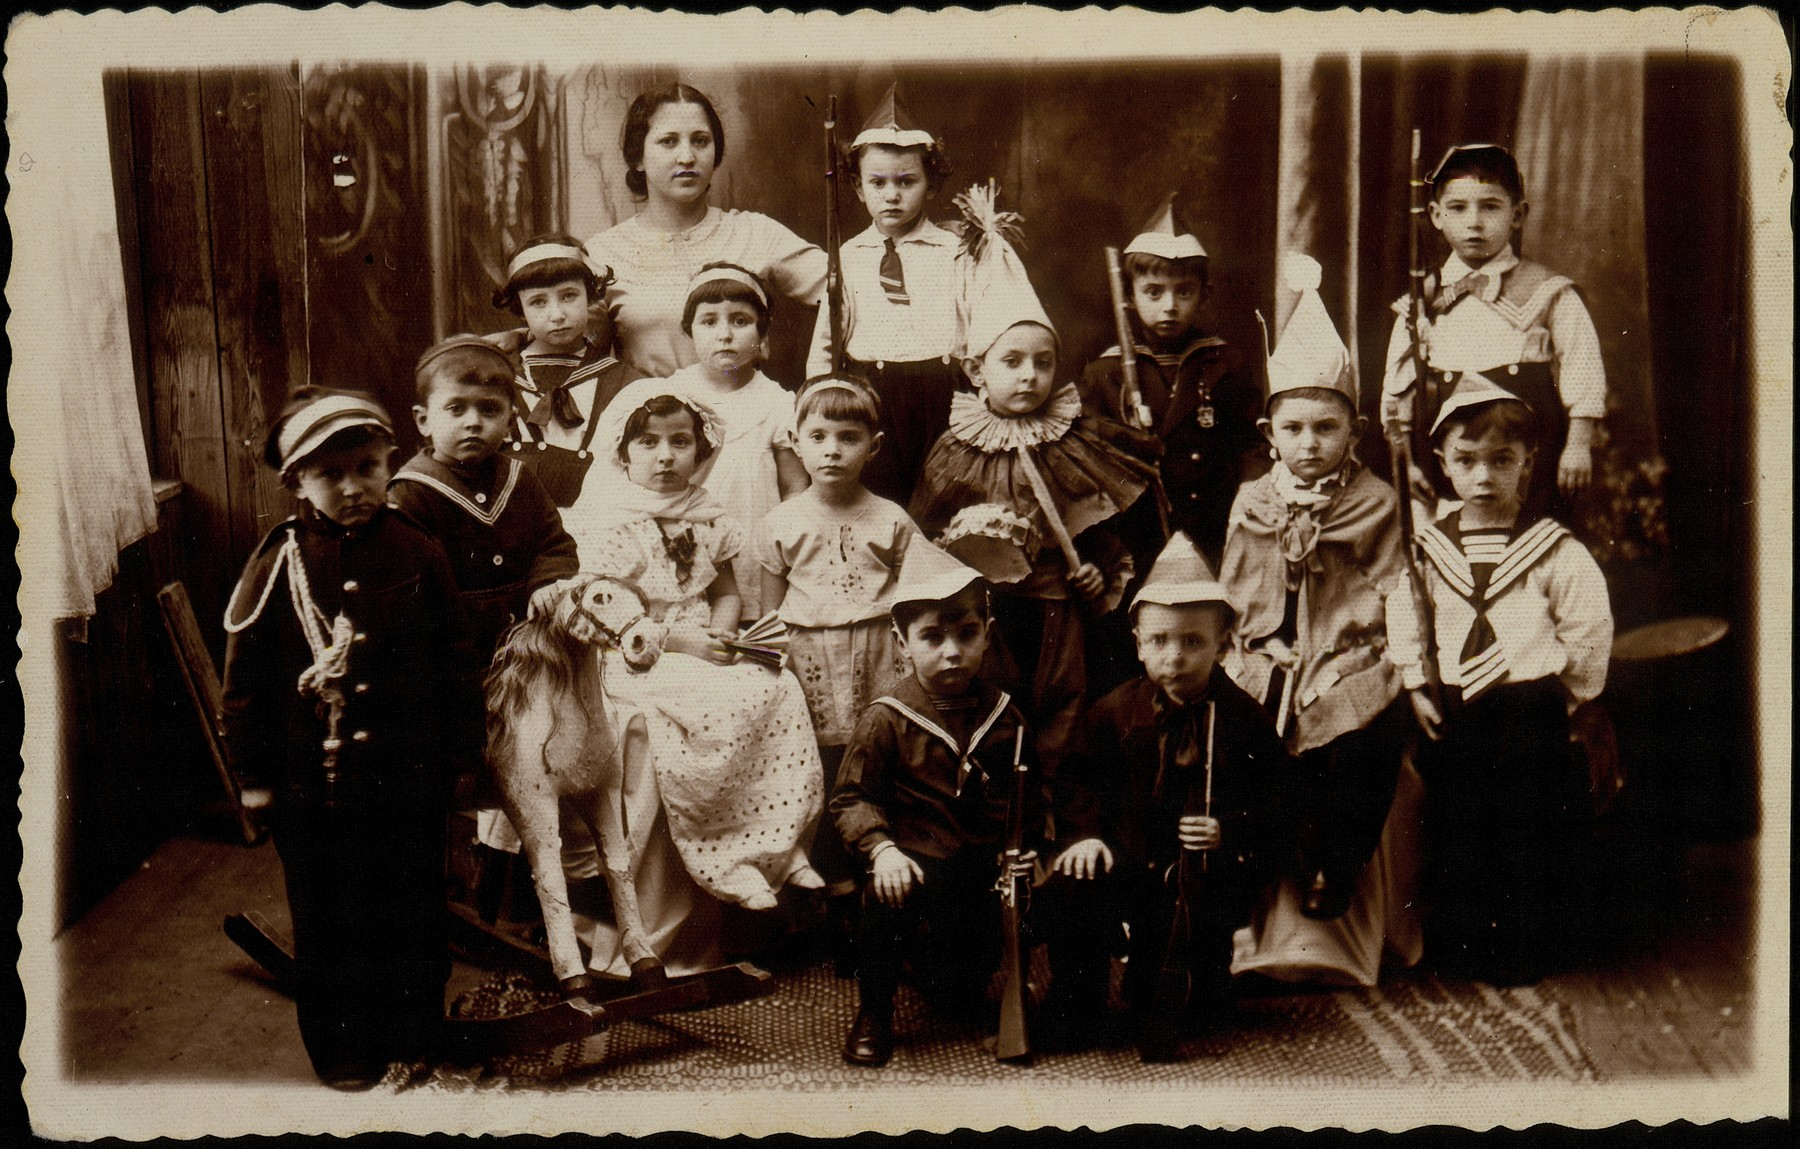 Group portrait of Jewish children from the Hebrew kindergarten in Eisiskes, dressed in costumes for a Purim play.  Pictured in the back row from right to left are: Yudaleh Kabacznik, unknown, Elisha Koppelman and Dora Feller;  in the third row from right to left are: Slepak, Yitzhak Sonenson, Yehudah Schneider, Hannah Shawitski and Reizele Erlich; in the second row from right to left are: Pola Berkowicz, Gittele Sonenson, Mordekhai Bichwid and Arieh Krisilov; sitting in front are: Yaakov Kaganov (right) and Hayyim Gershowitz (left).  Dora Feller immigrated to Palestine; Yaakov Kaganov was killed in a car accident in the United States; Gittele Sonenson died from tuberculosis while in hiding in a pit during the war.